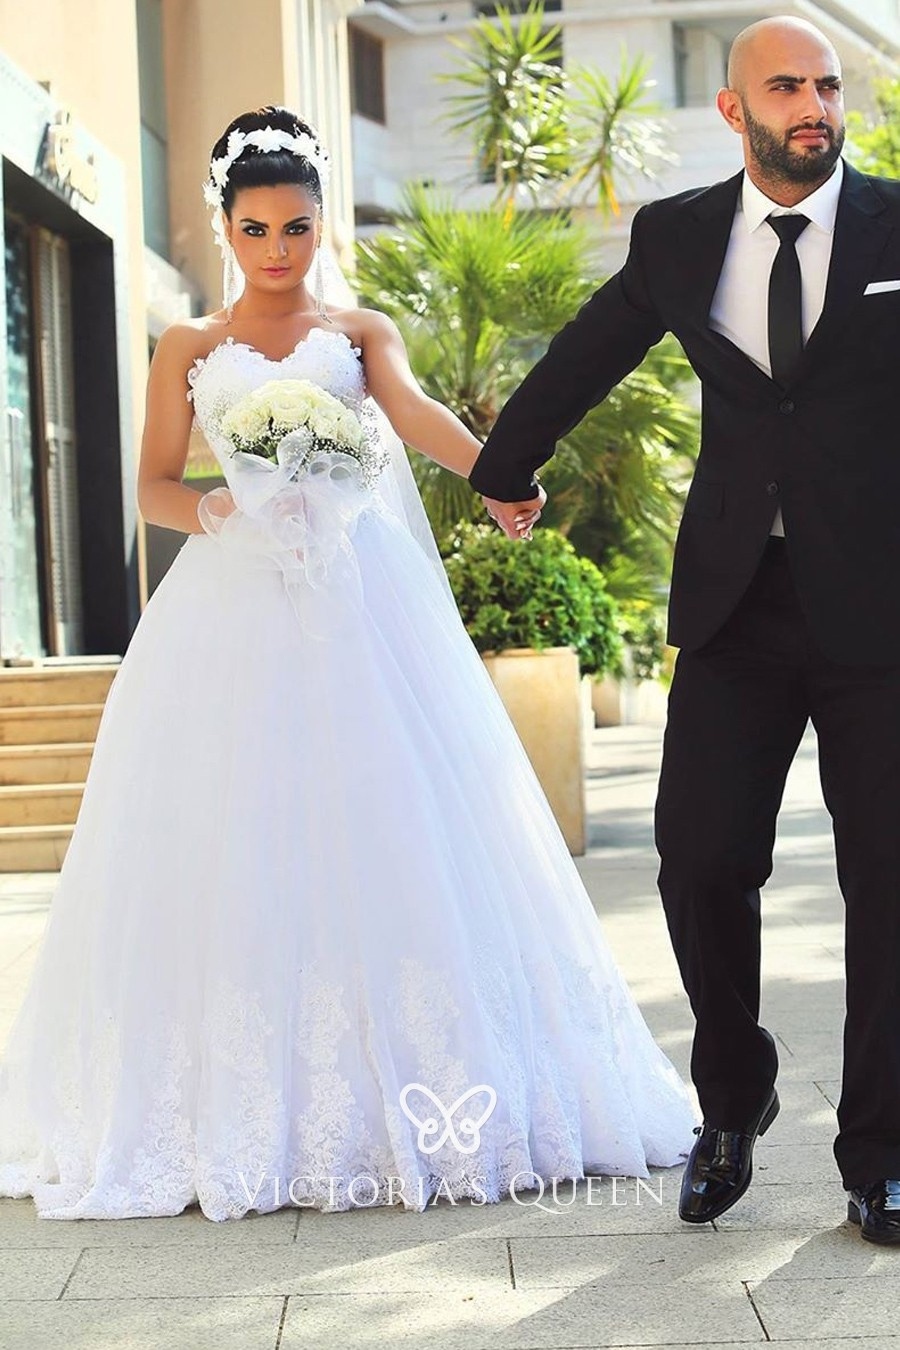 White Lace Strapless Sweetheart Ball Gown Wedding Dress Vq